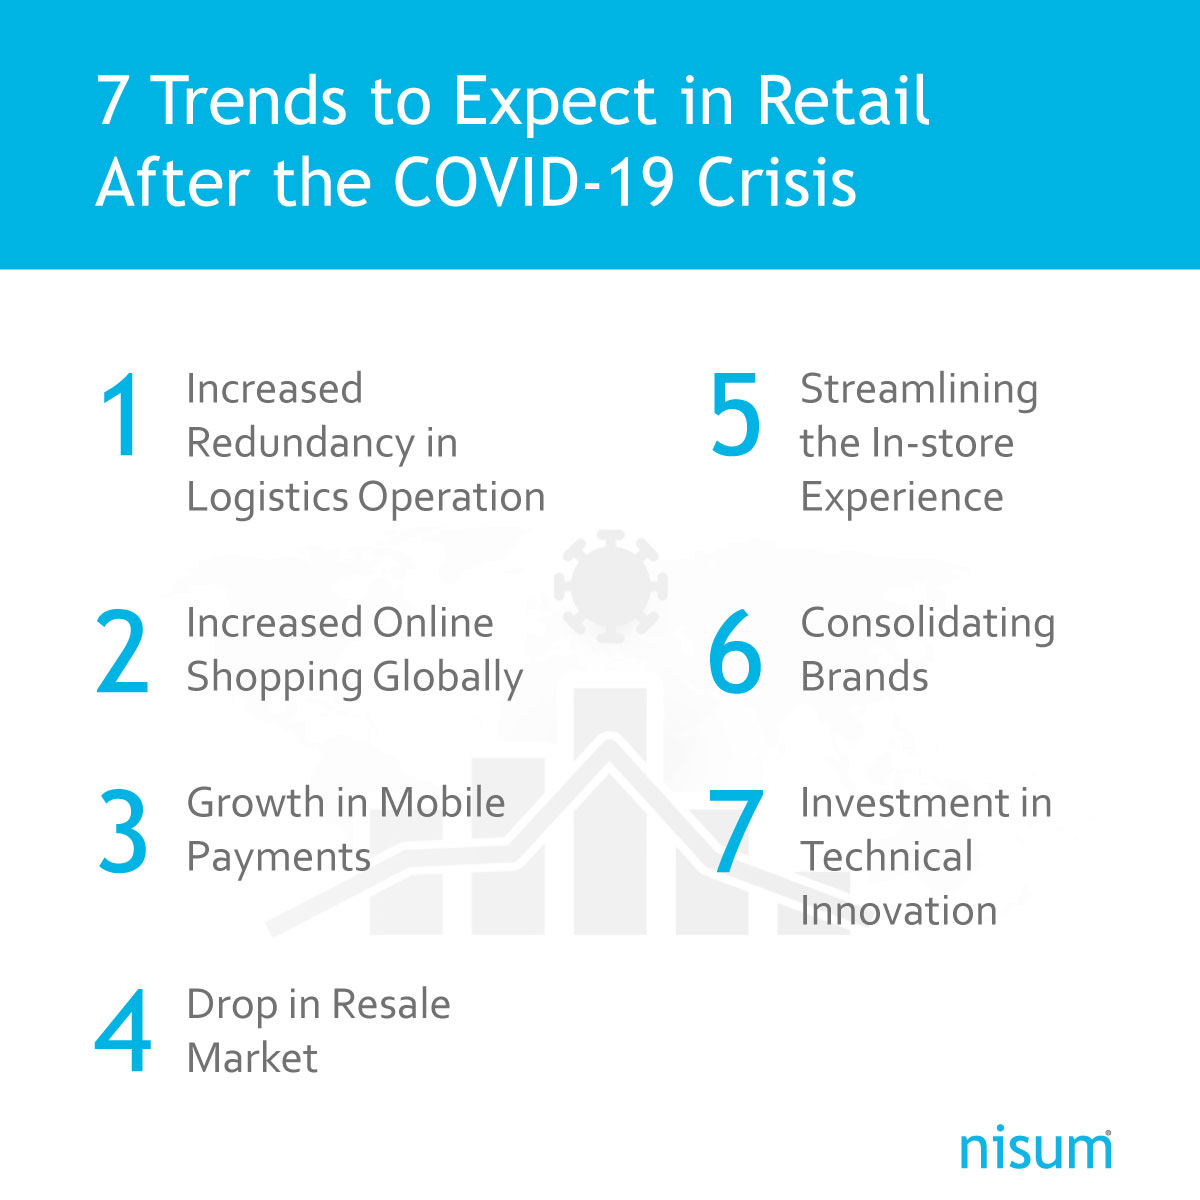 7-trends-to-expect-in-retail-after-the-covid-19-crisis-infographic-banner-2